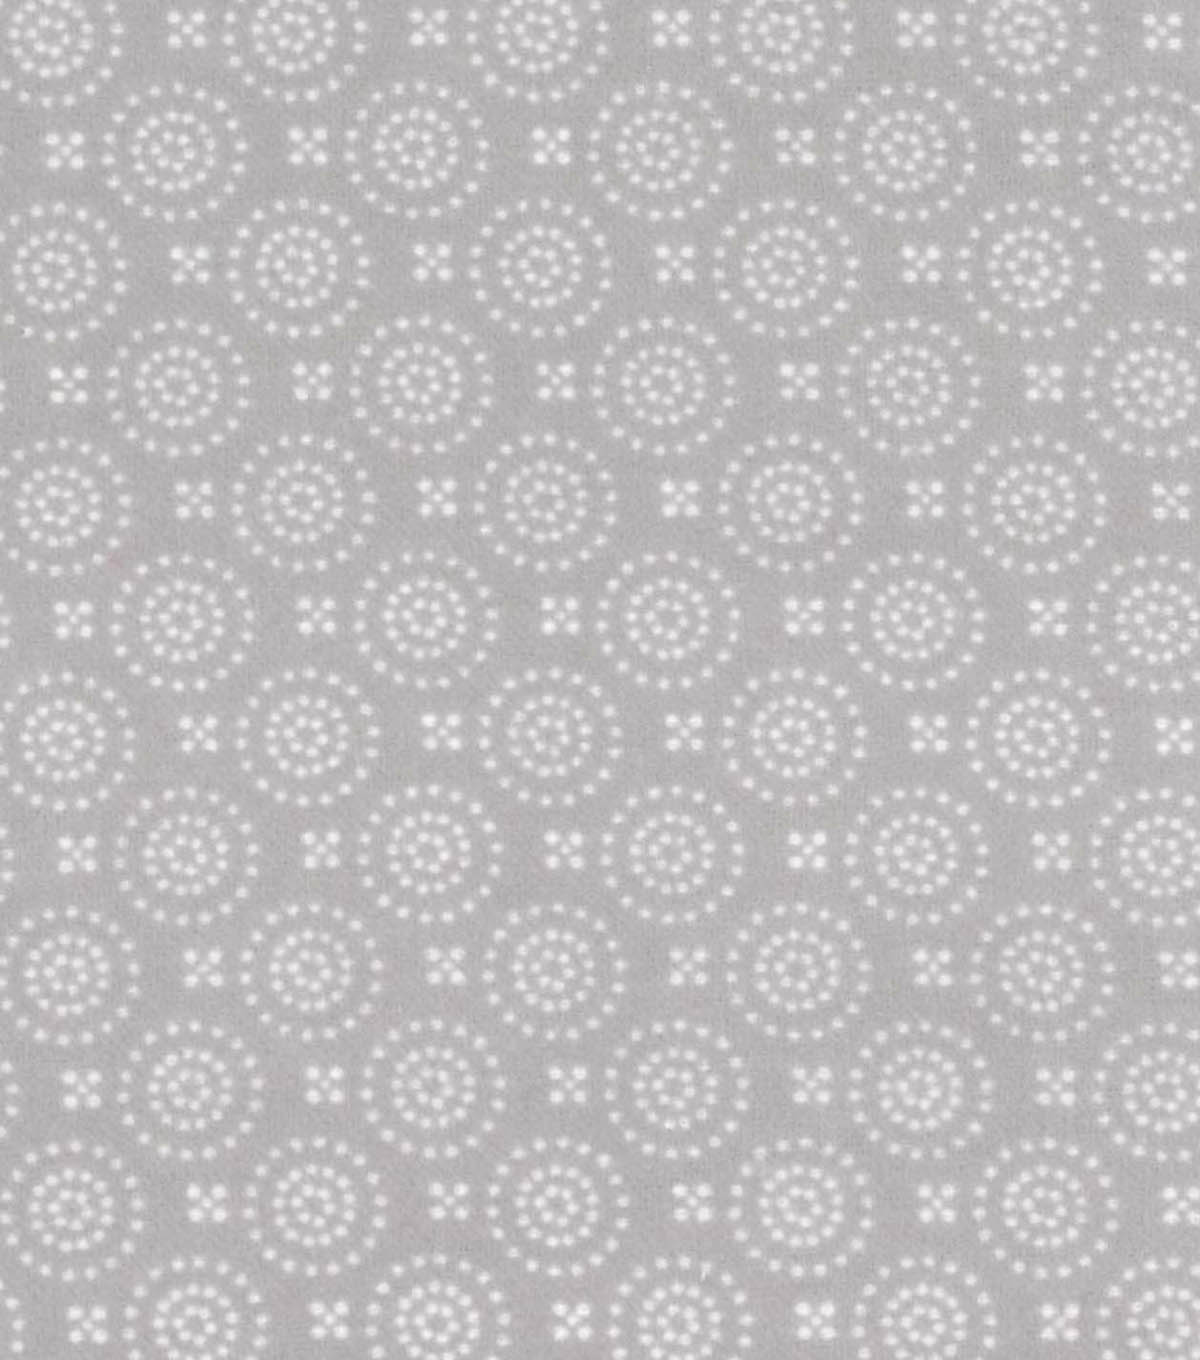 Snuggle Flannel Fabric -Dotted Circles